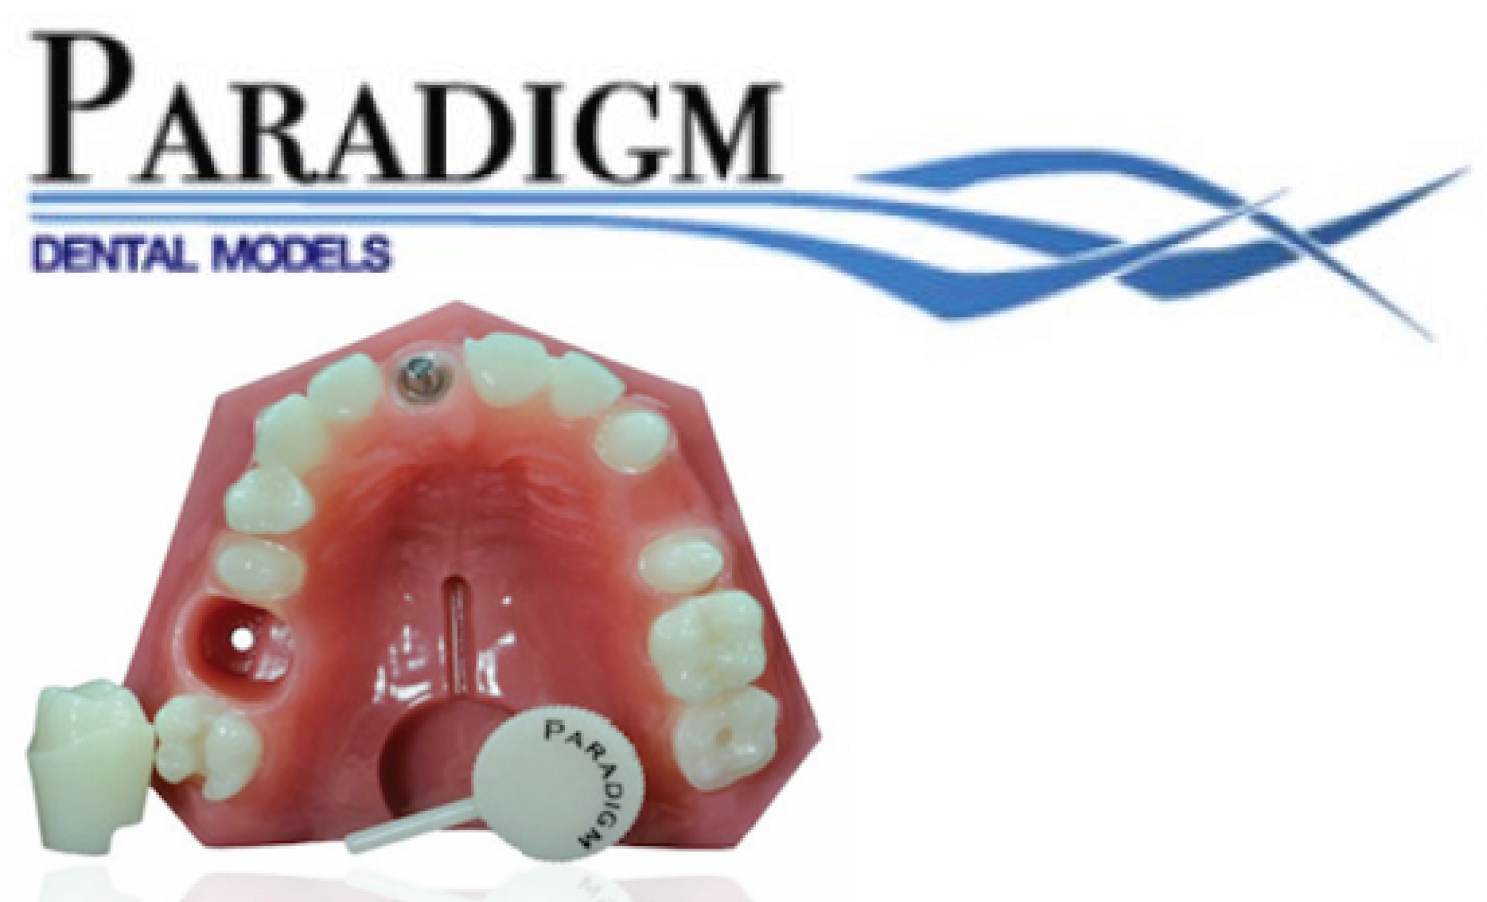 Paradigm Dental Models